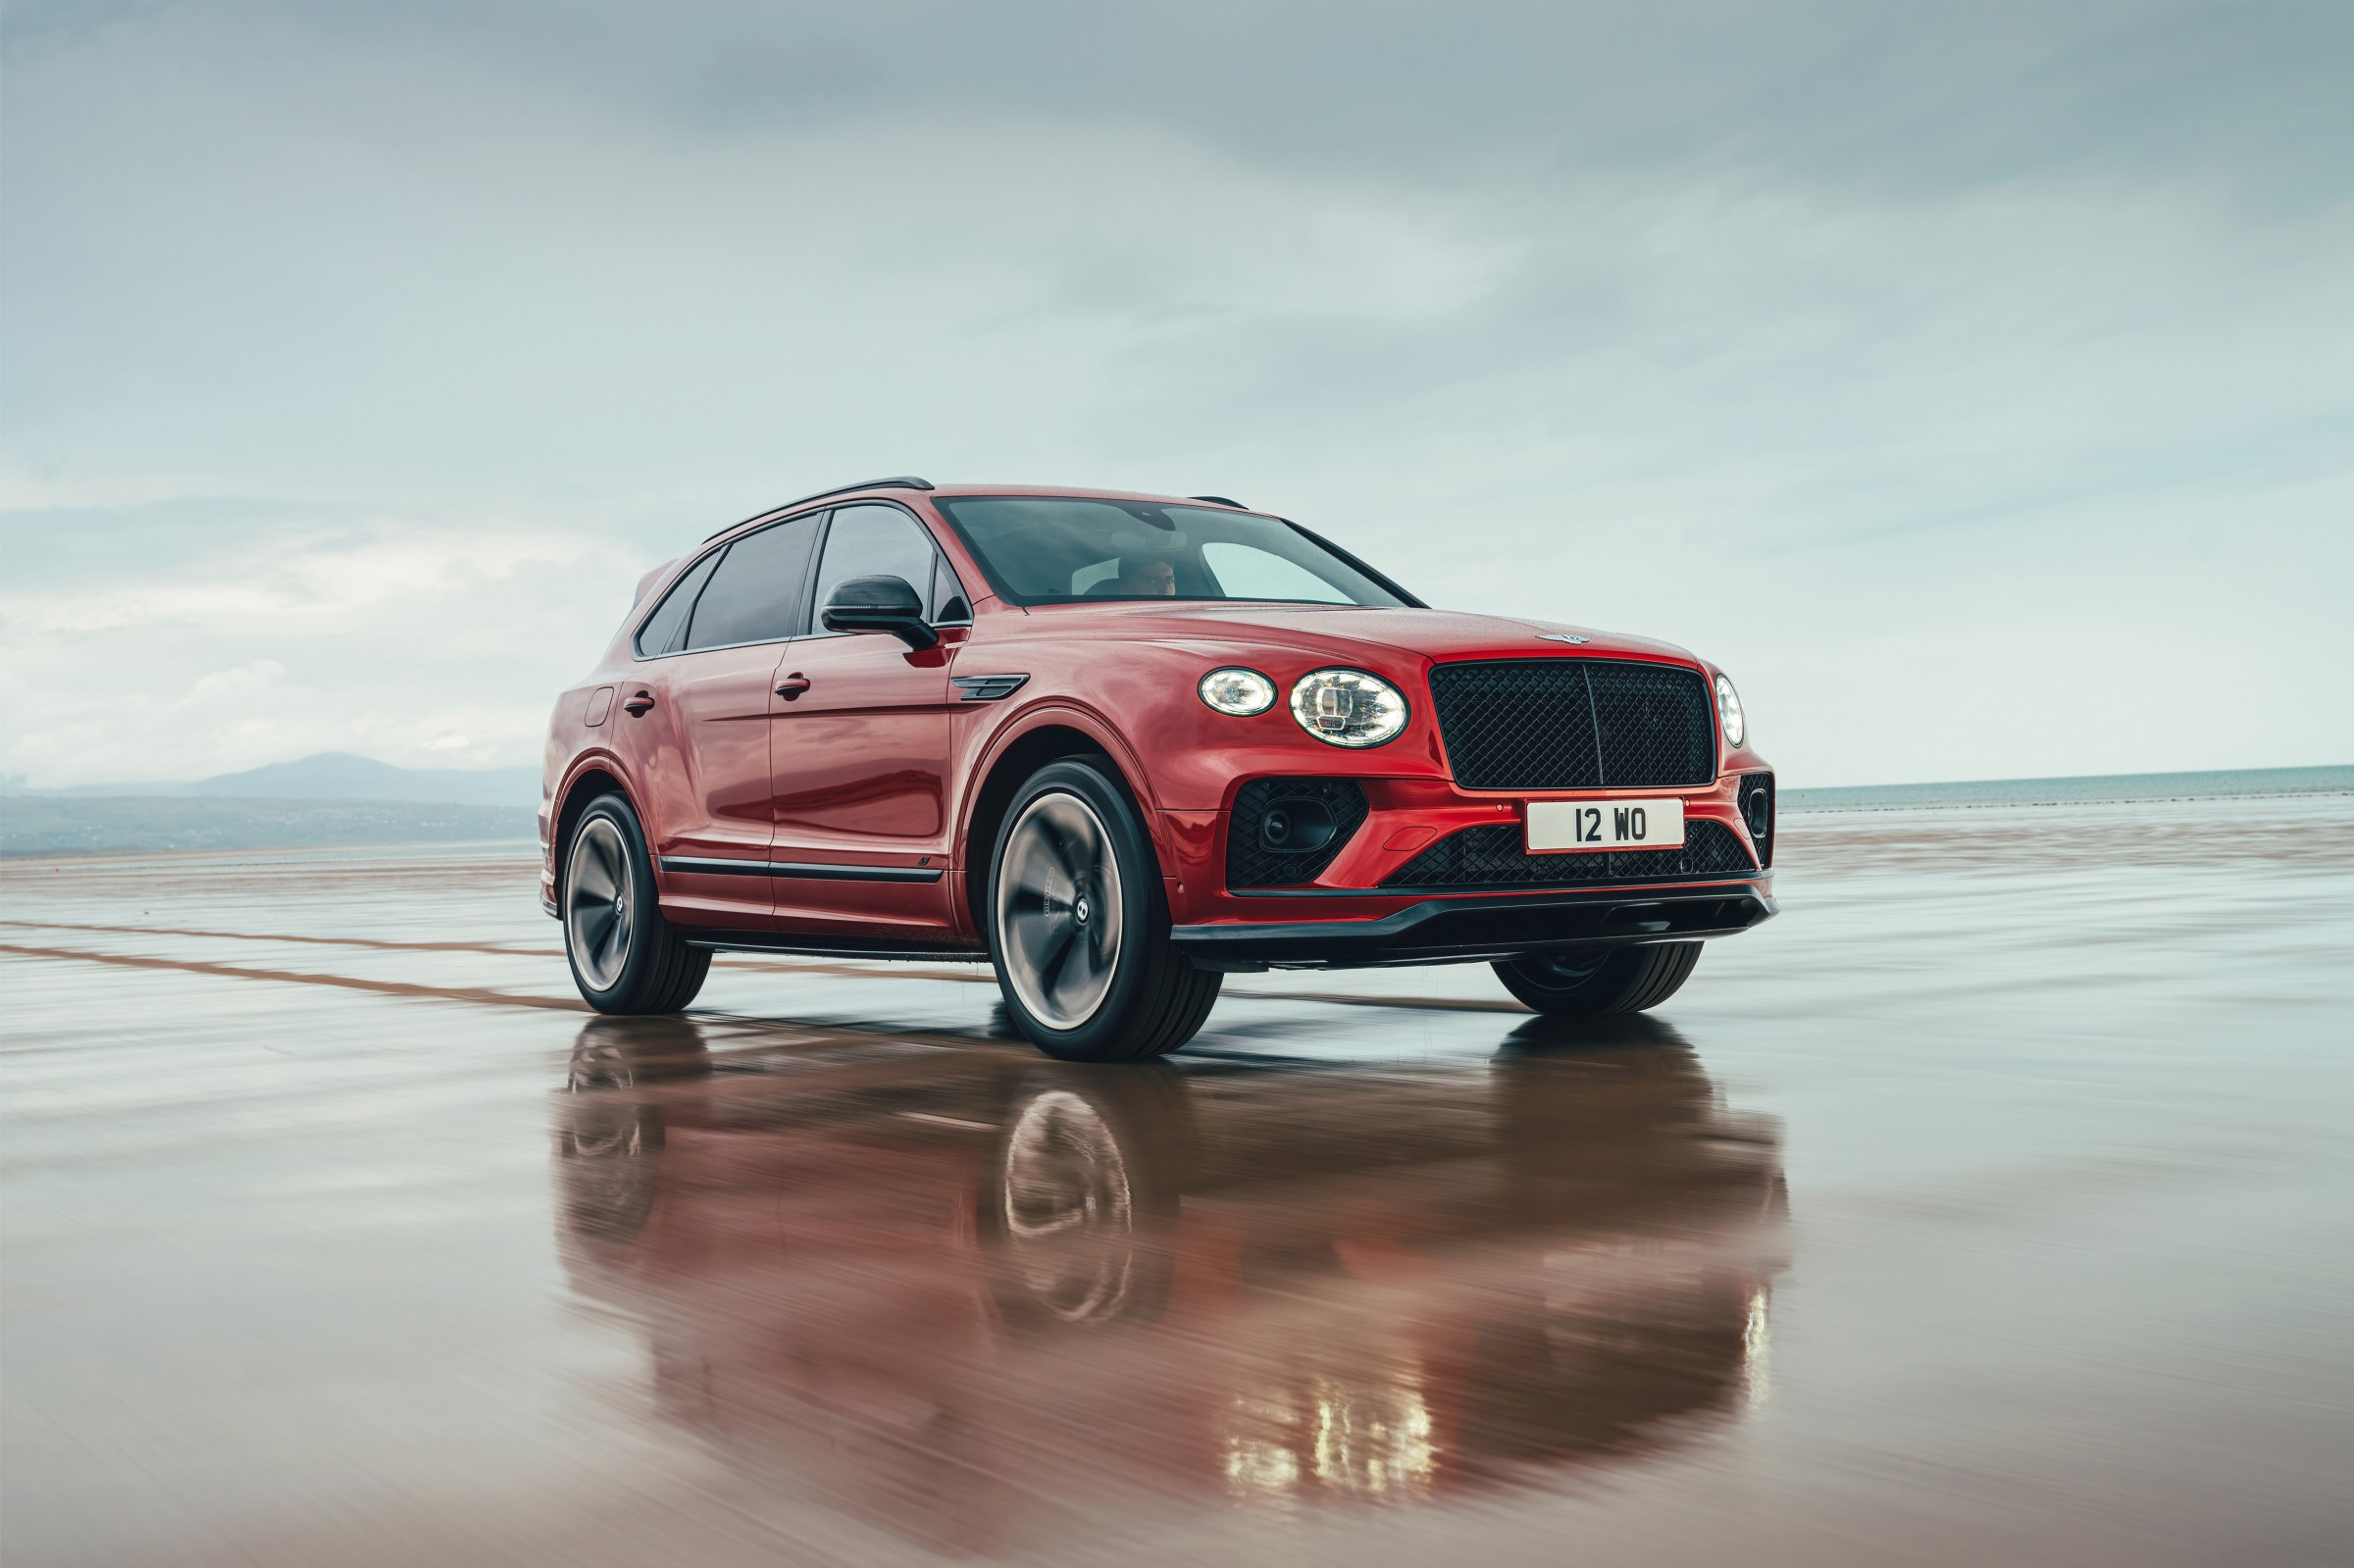 full specifications, release date, and price of 2022 Bentley Bentayga S in Nigeria